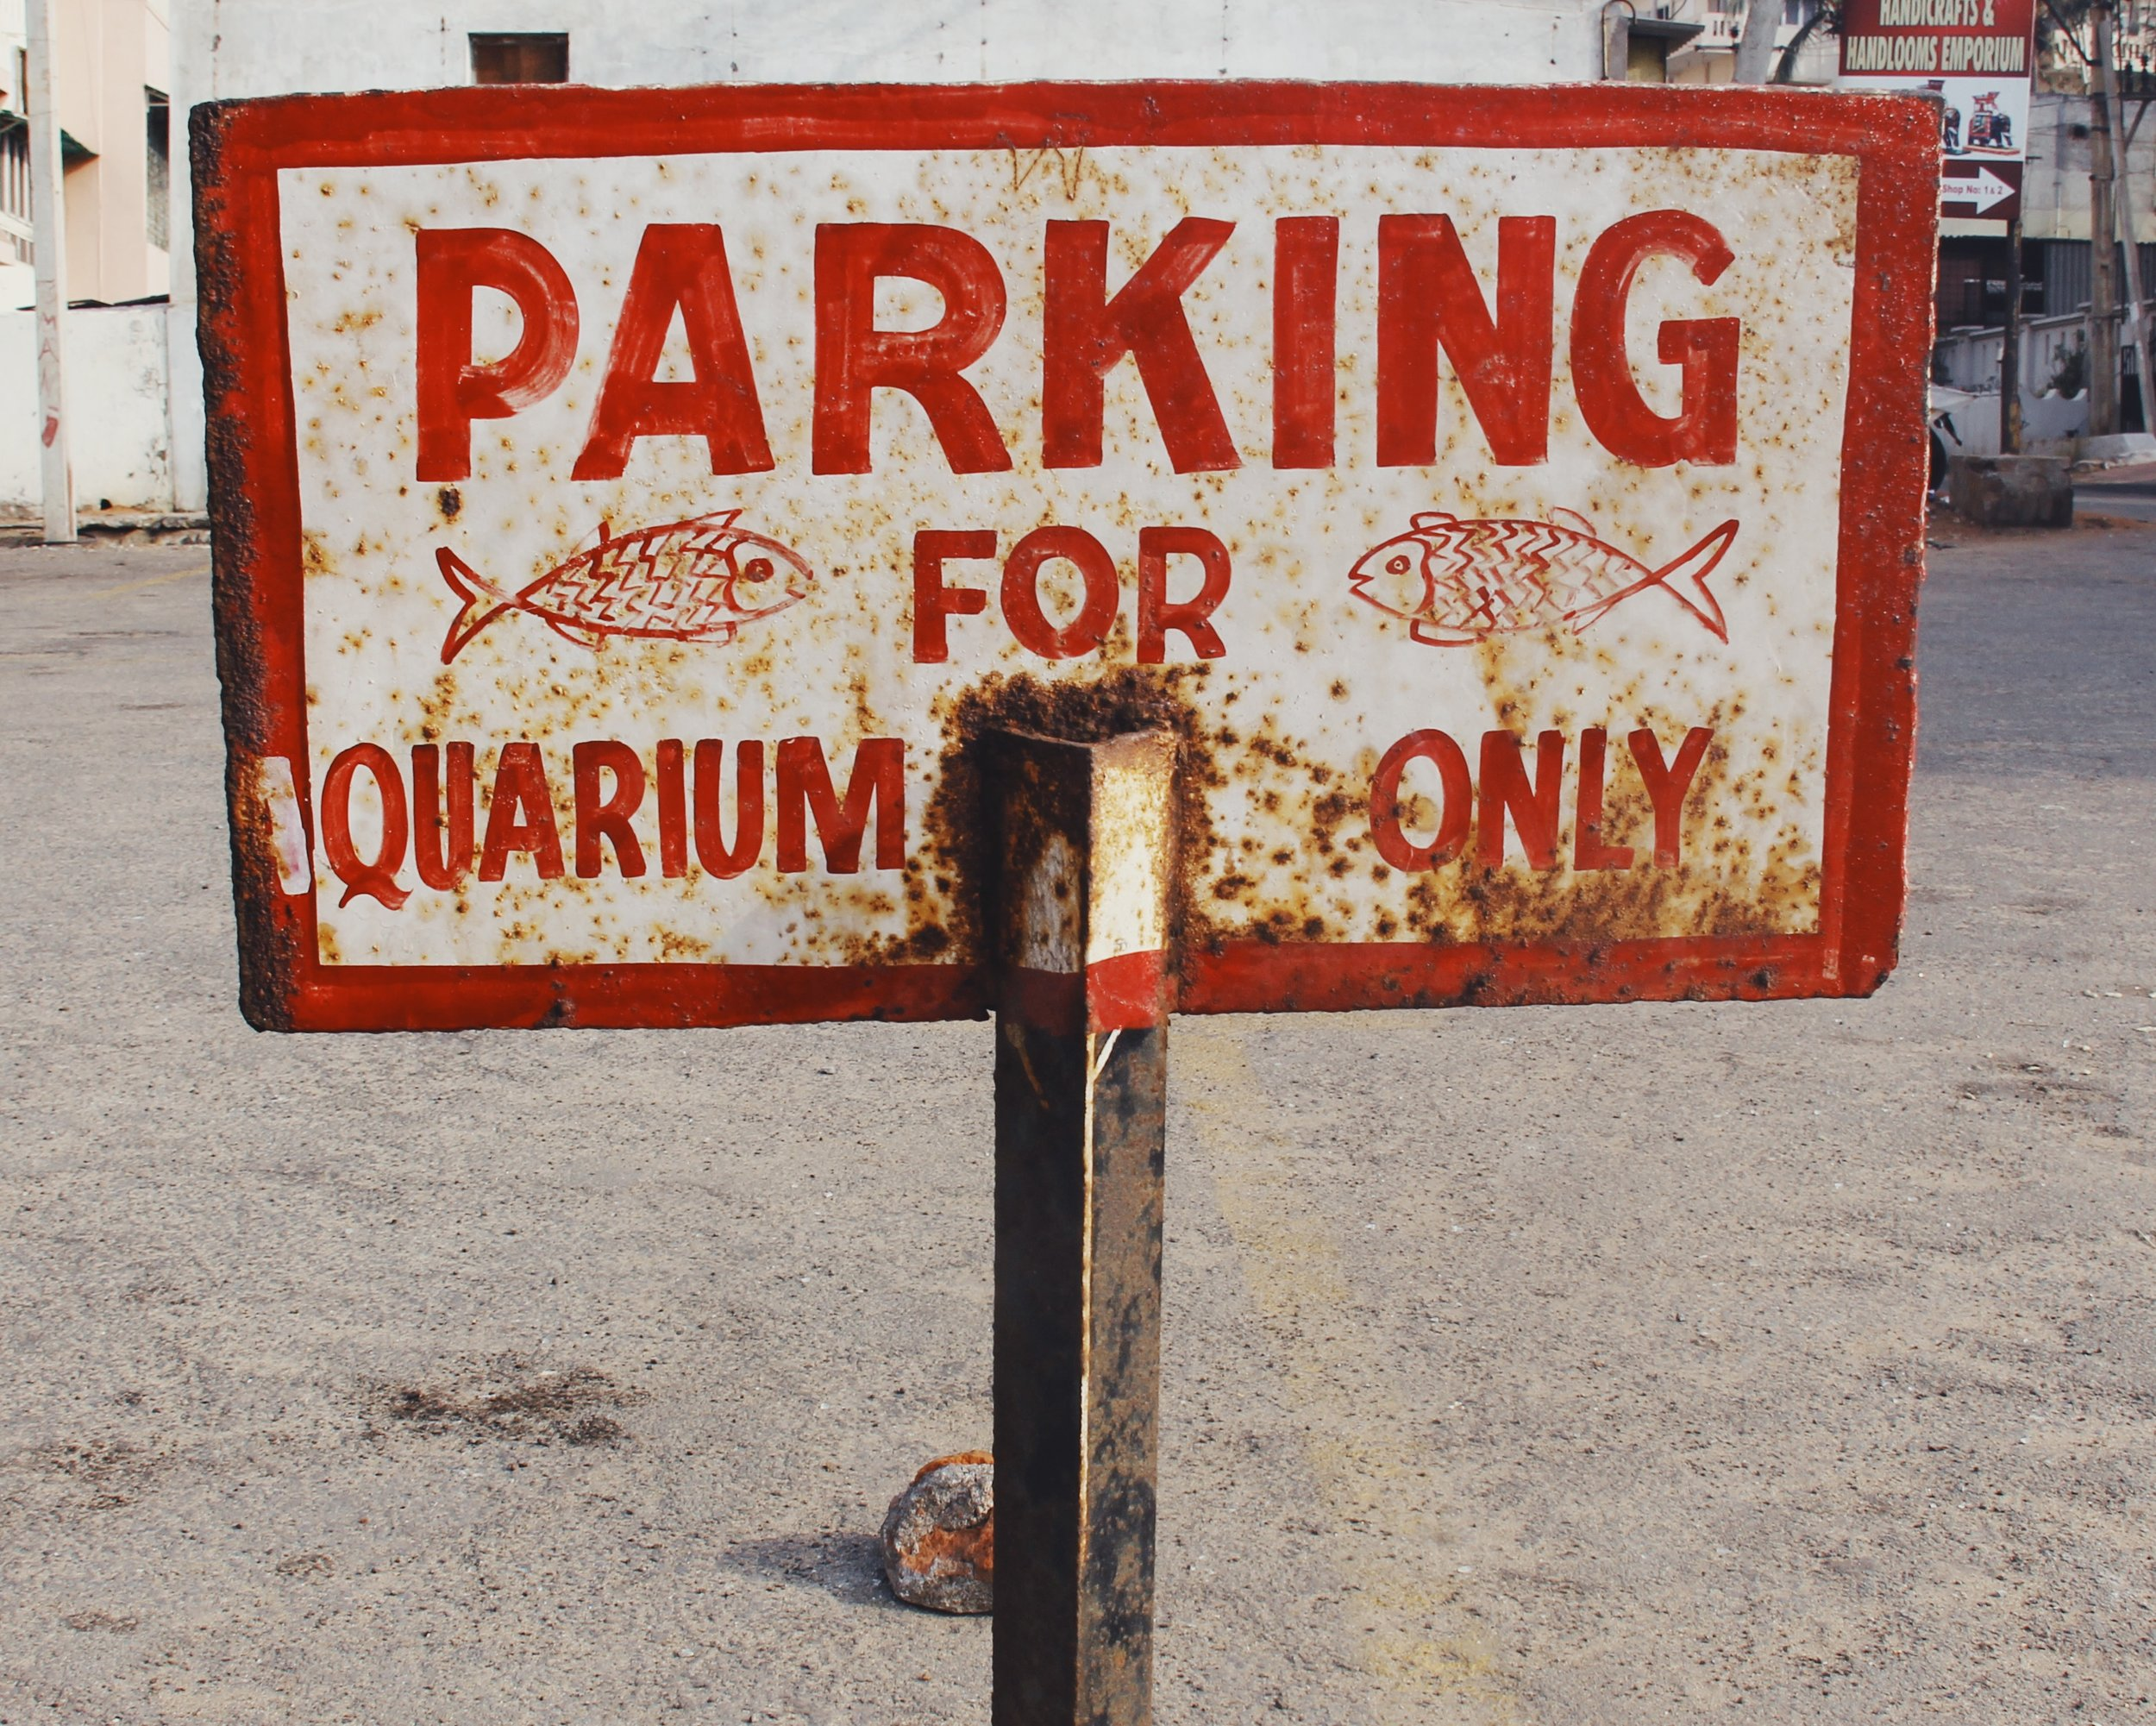 Hand painted parking sign for the aquarium.